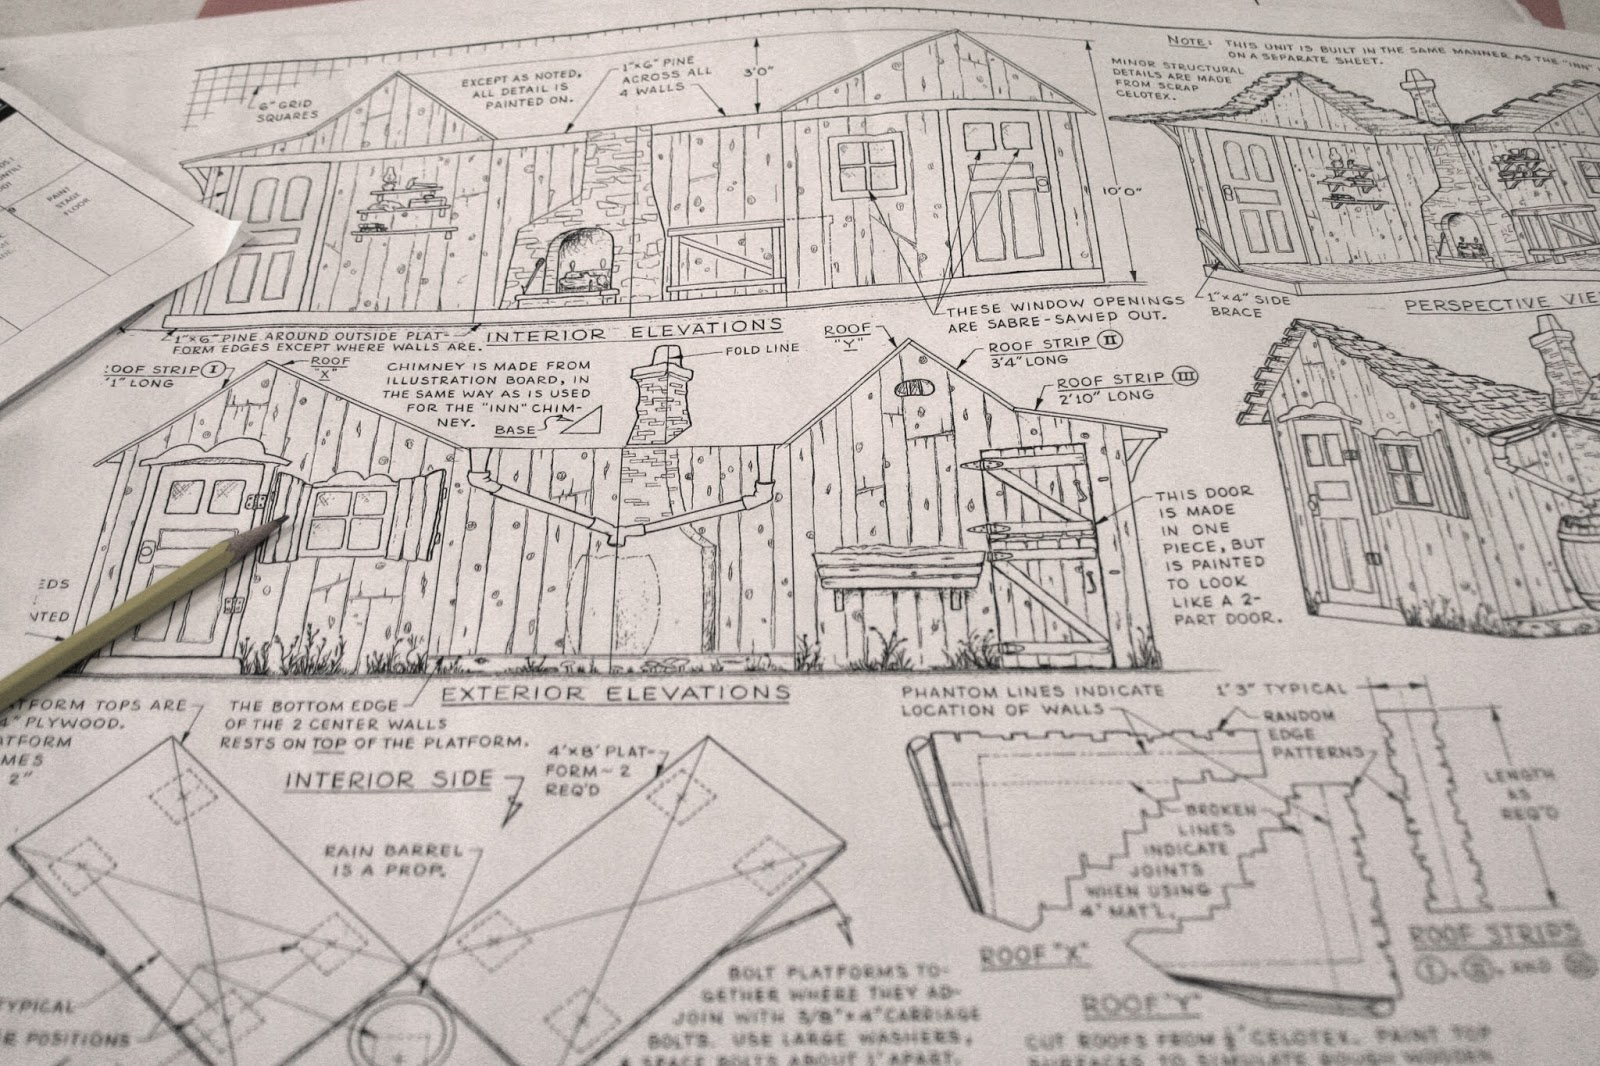 Slidell little theatre set design building the set for fiddler a kit designed specifically for fiddler on the roof contained a series of blueprints for the entire set malvernweather Images